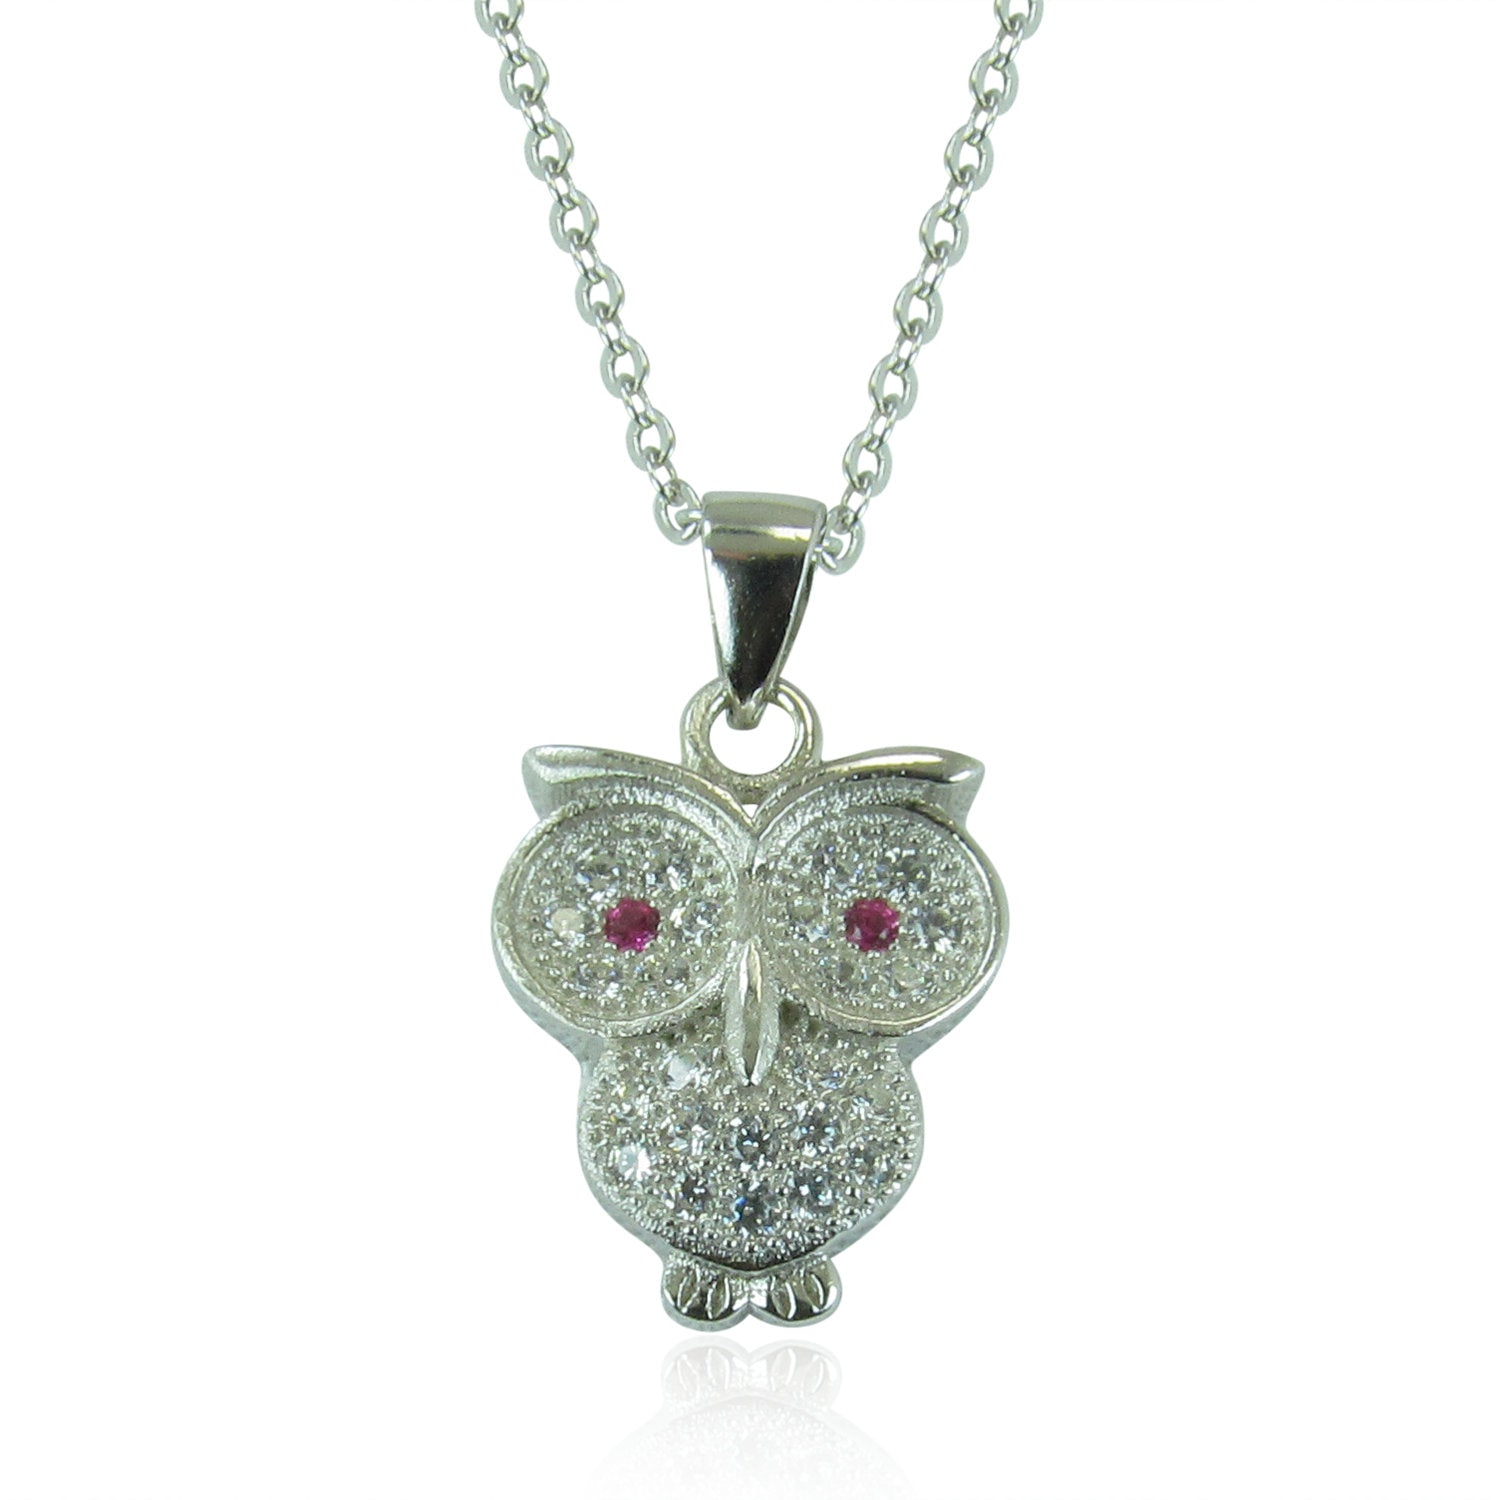 OWL PAVE CZ STERLING SILVER NECKLACE